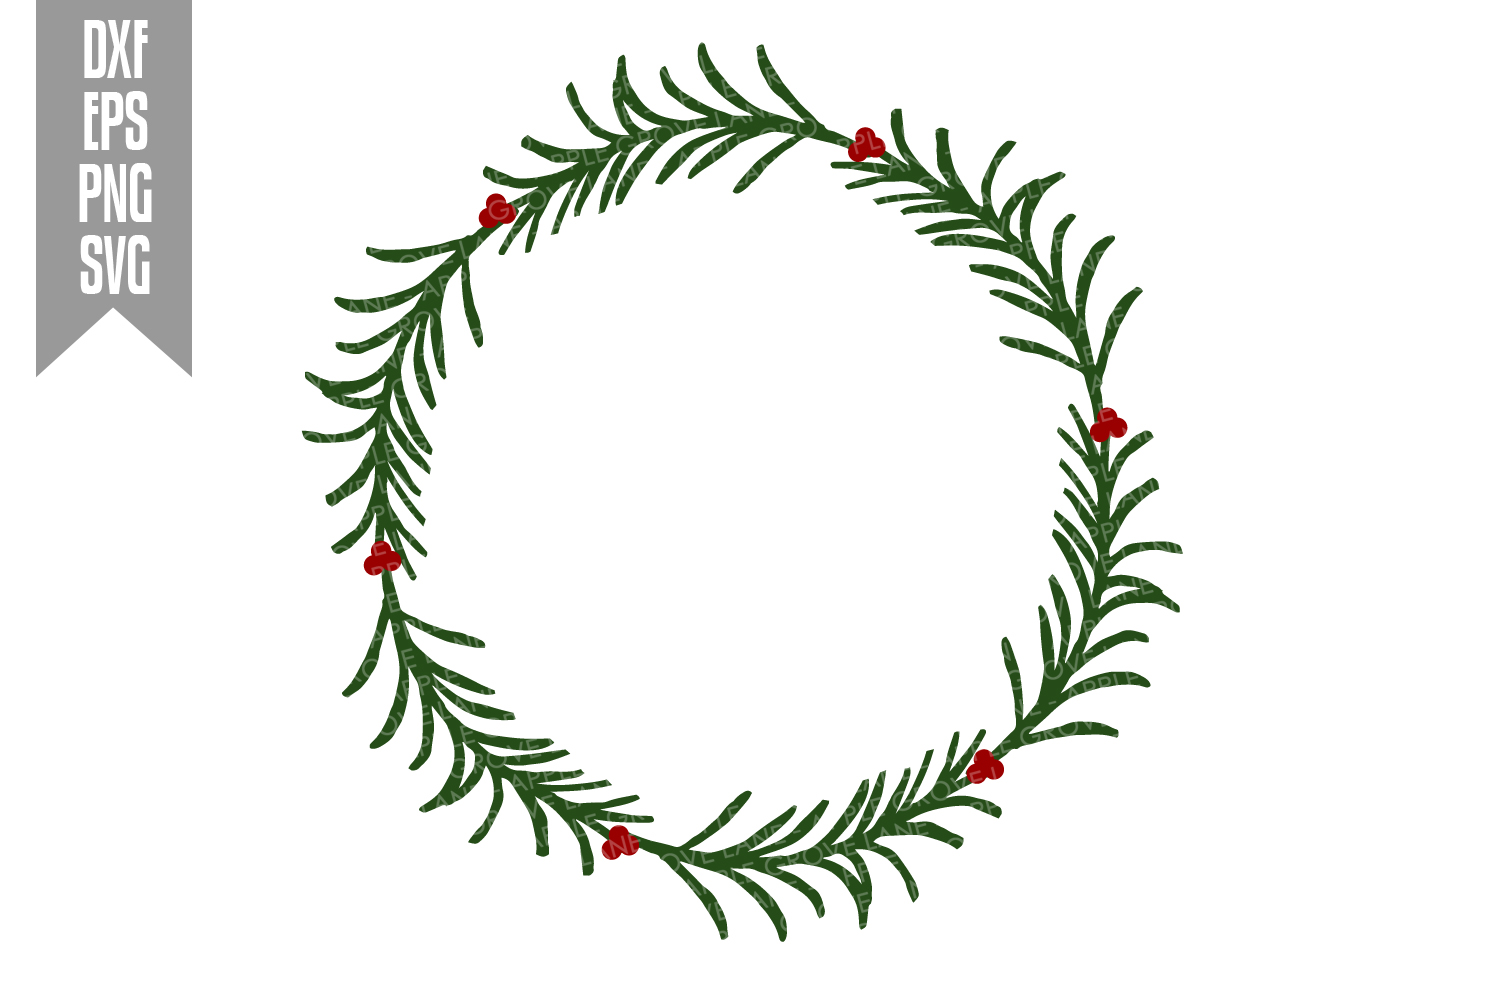 Christmas Wreath Svg Cut File - Svg Dxf Eps Png example image 2